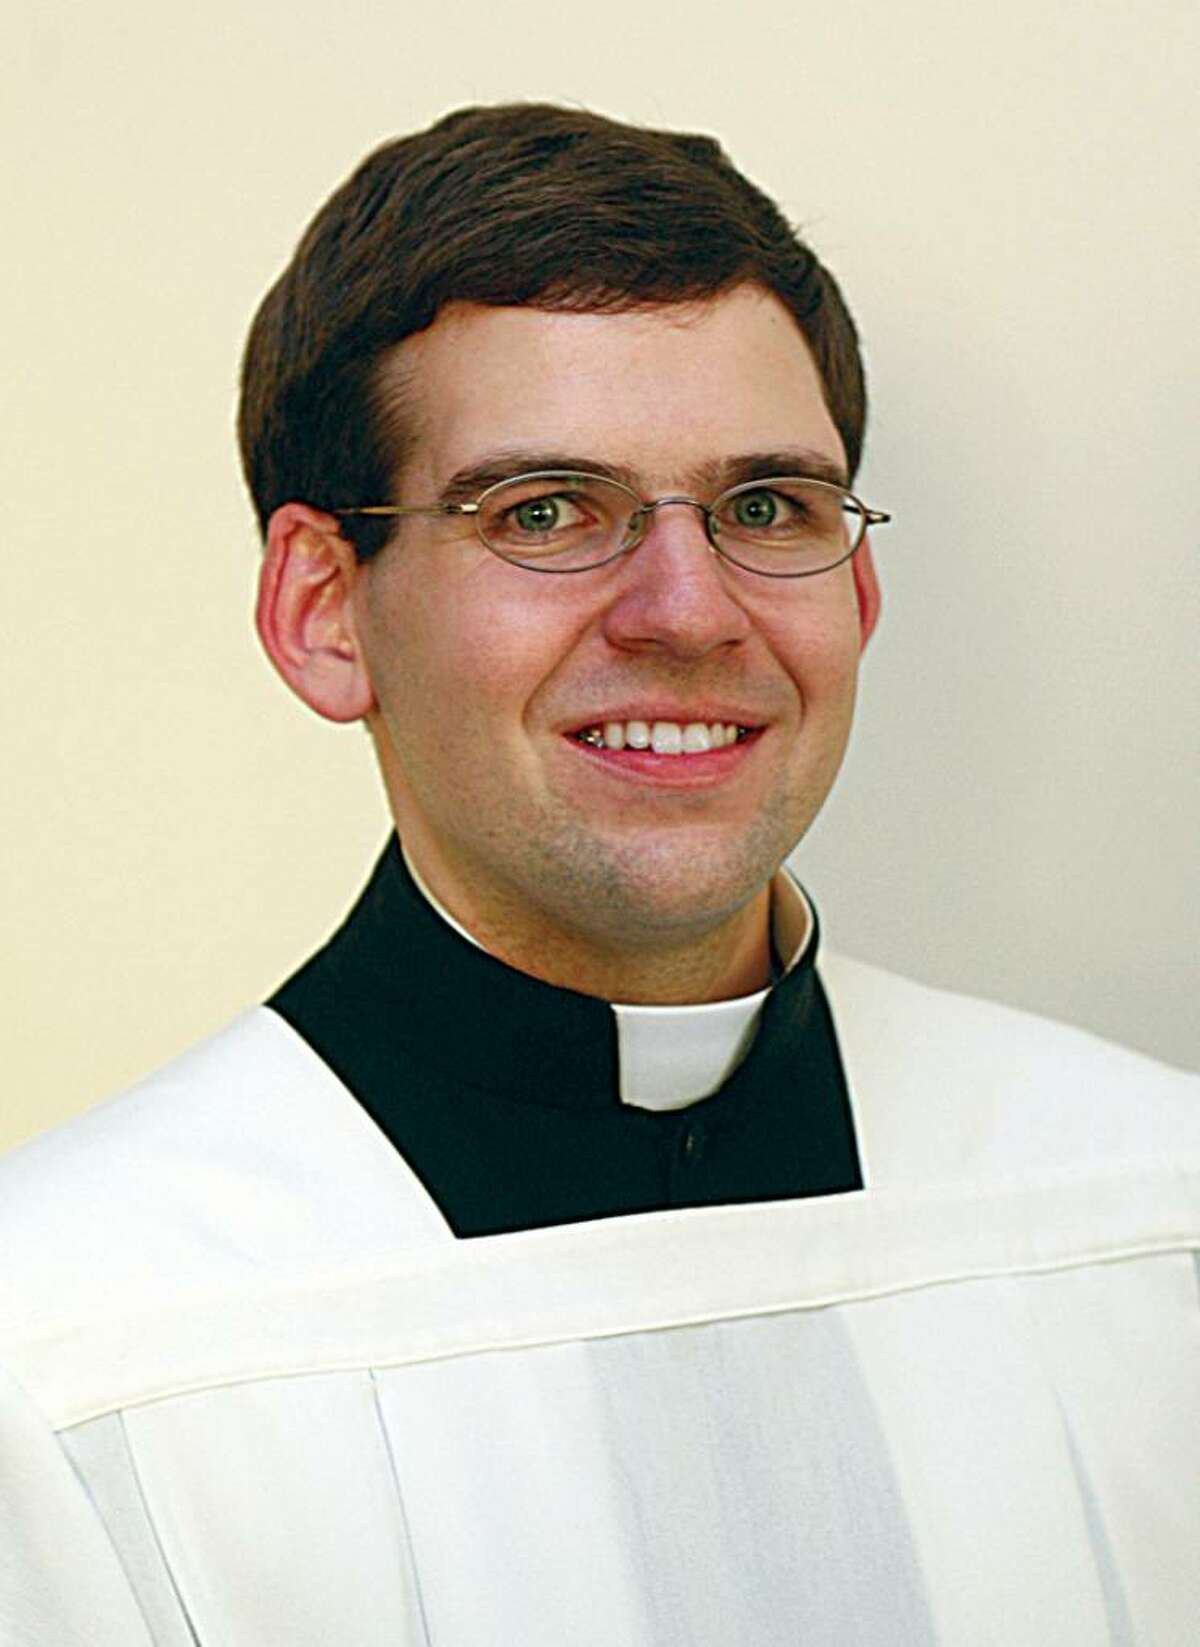 Michael P. Novajosky, 27, of Trumbull, is being ordained as a priest in the Bridgeport Diocese Saturday at 10 a.m. at St. Augustine Cathedral in Bridgeport.